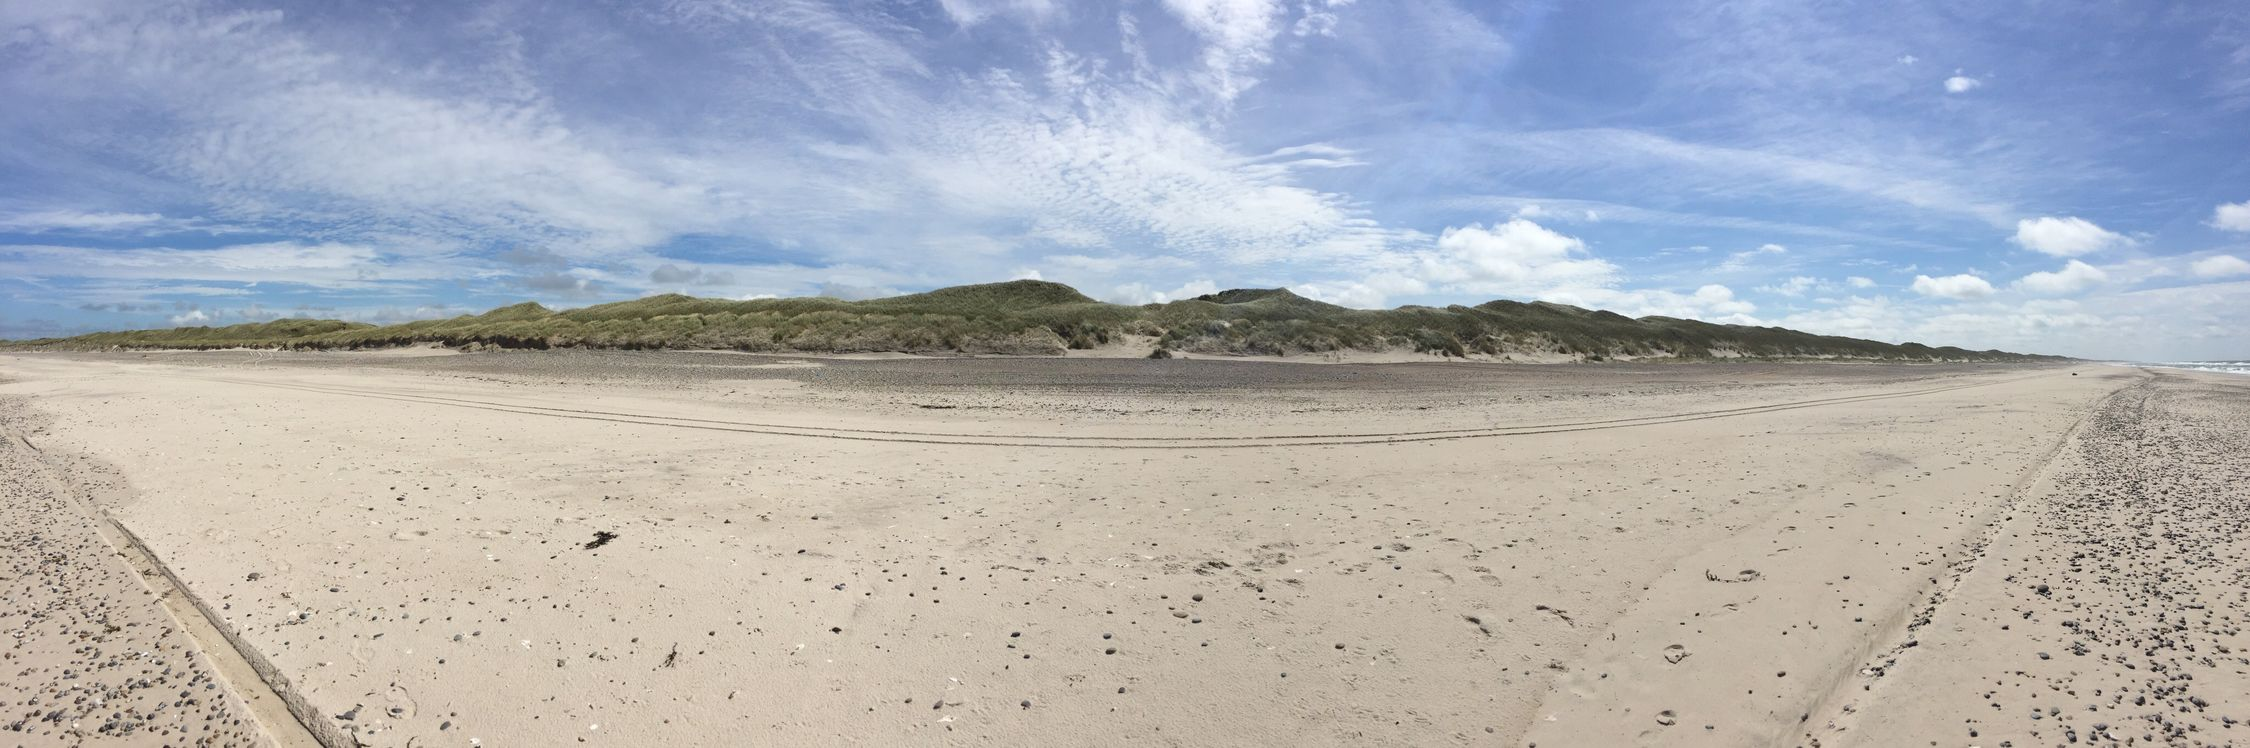 Sand Nature Scenics Beauty In Nature Non-urban Scene Landscape Sky Outdoors No People Beach Day